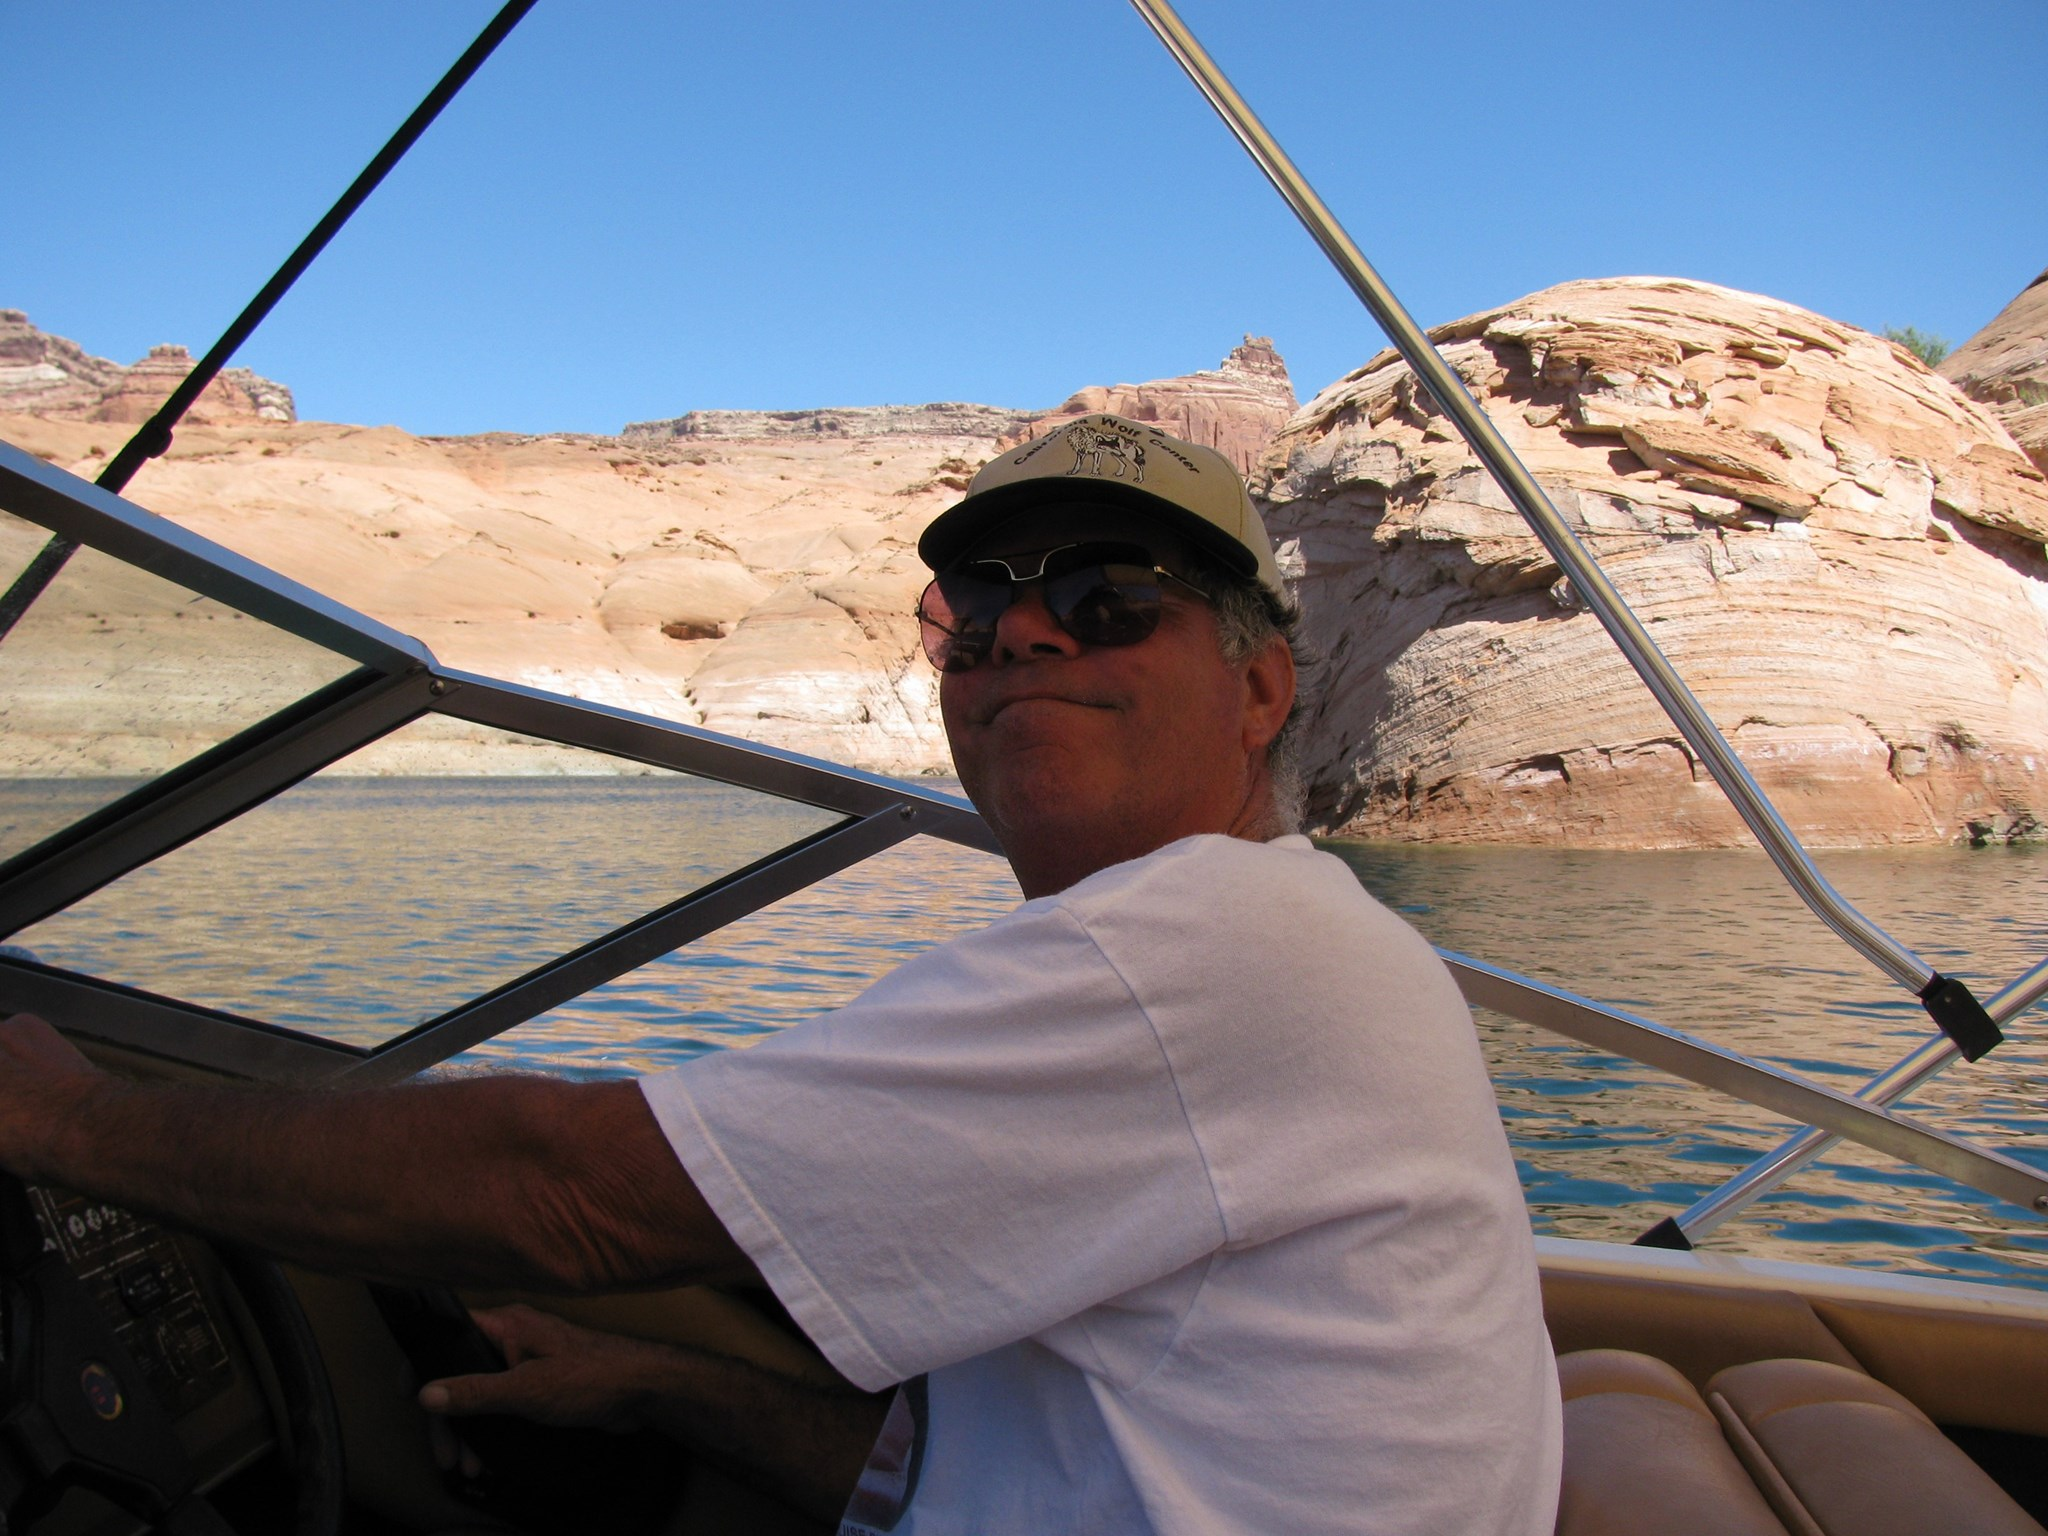 Plying the waters of Lake Powell always brought a smile to Scott